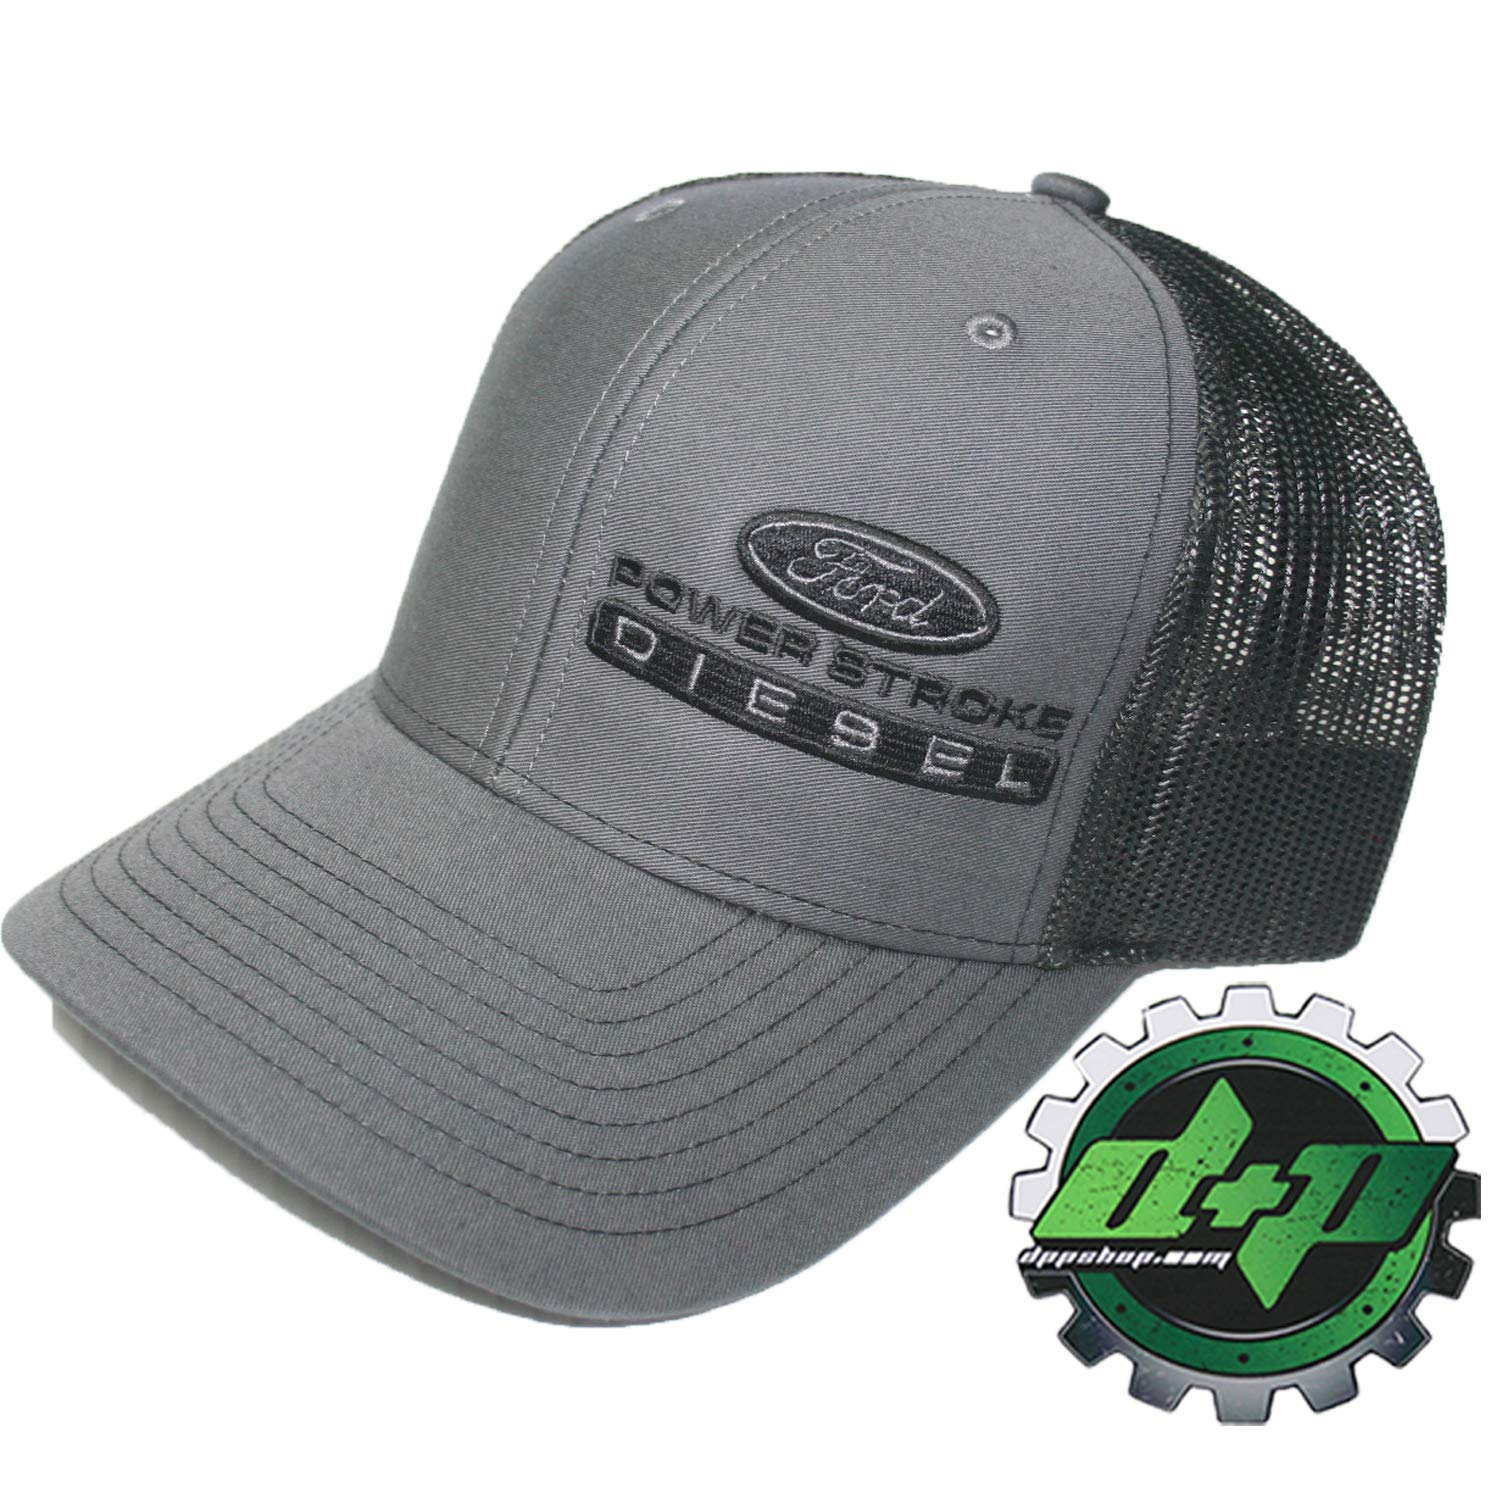 4f7fff07b72ed Amazon.com   Diesel Power Plus Ford Powerstroke Richardson 112 hat Truck  Charcoal Gray Black mesh snap Back   Sports   Outdoors